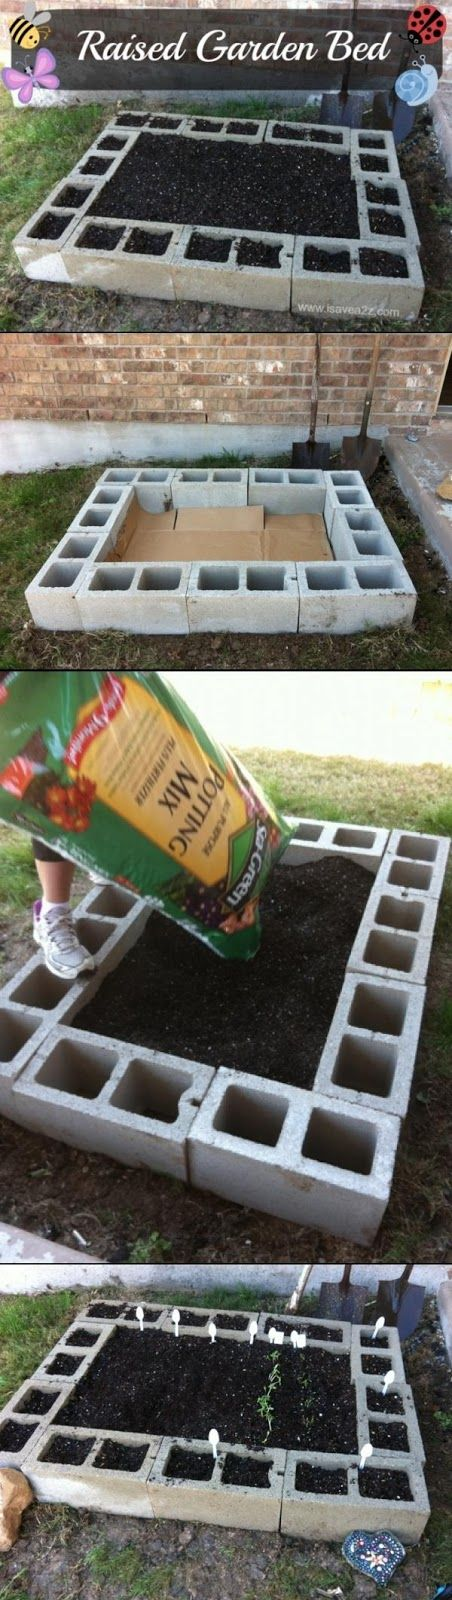 I would paint the outsides and tops before planting, maybe some different colors to make it interesting, but deffinitely would plant herbs in the outside top openings!!! Yeah baby!